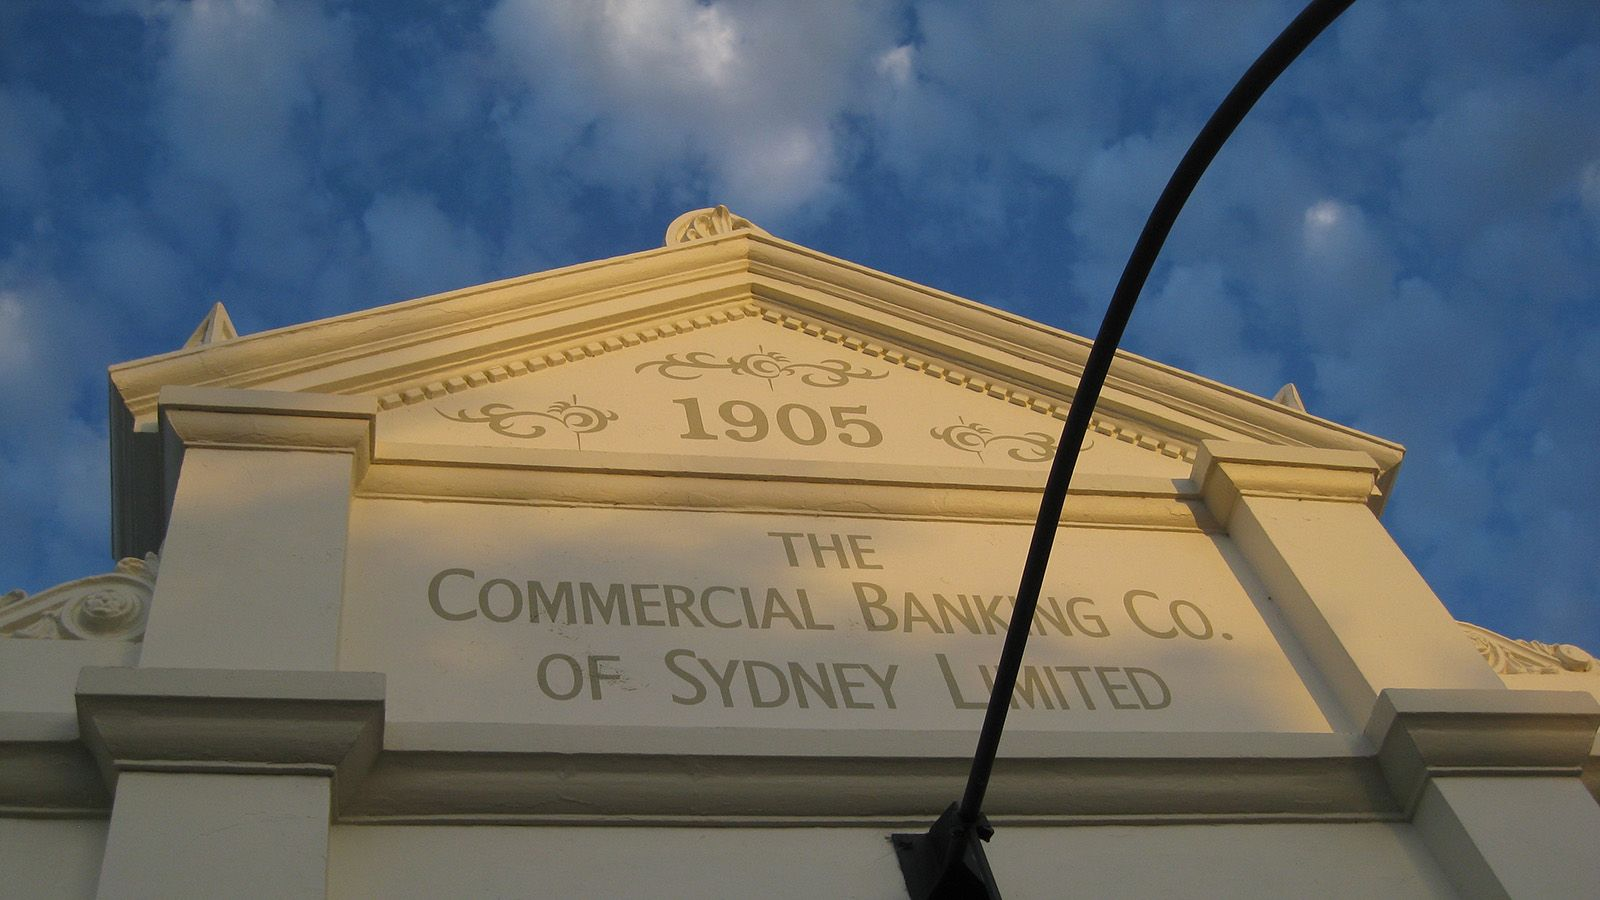 Cropped photograph of the facade of the Commercial Banking Co of Sydney Limited heritage building banner image